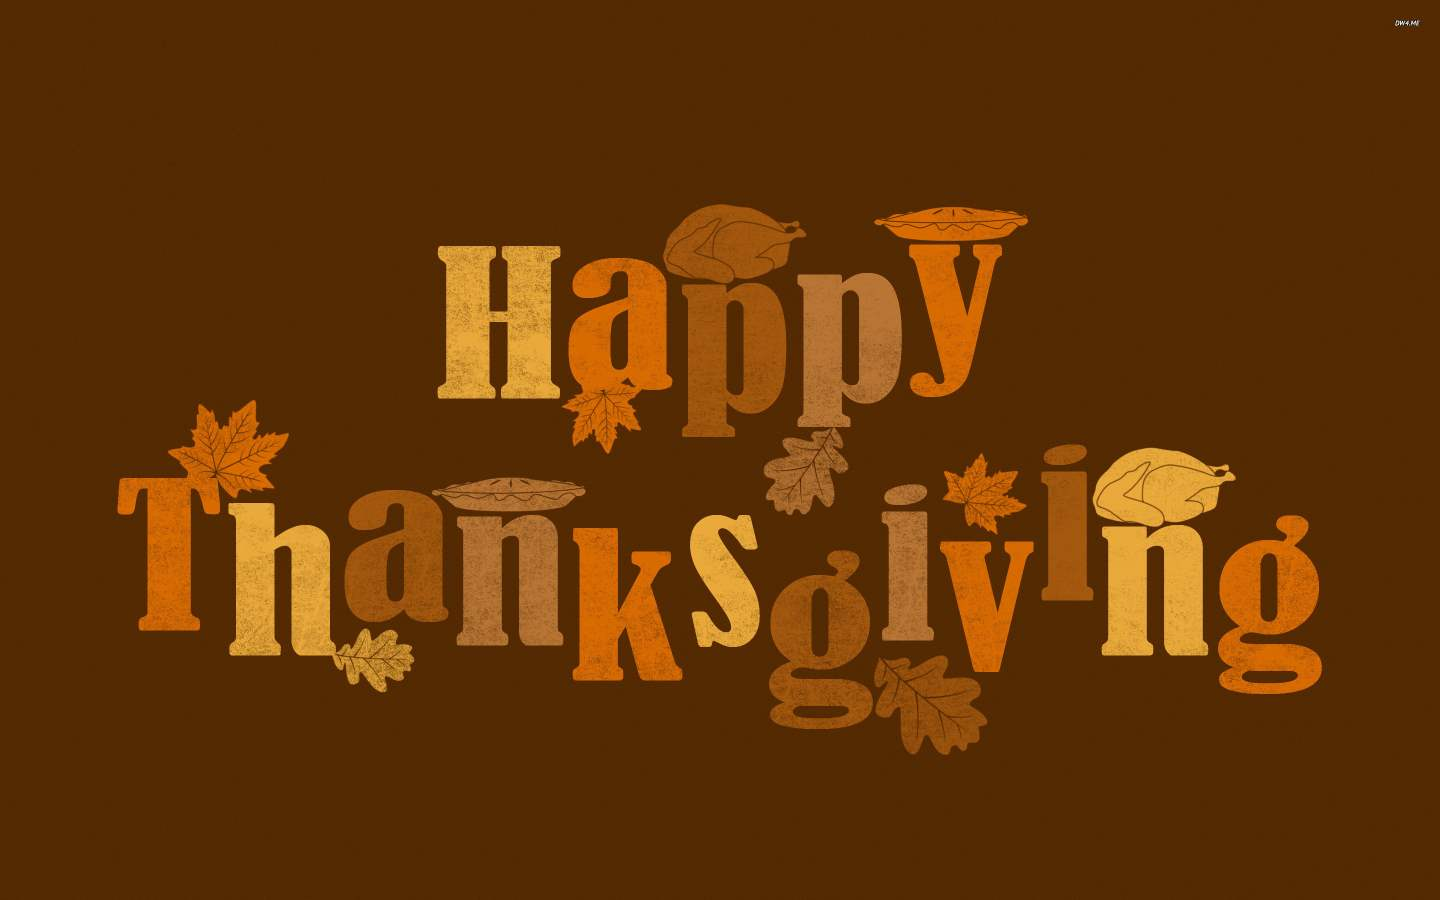 60 HD Happy Thanksgiving Wallpapers And Printable Cards